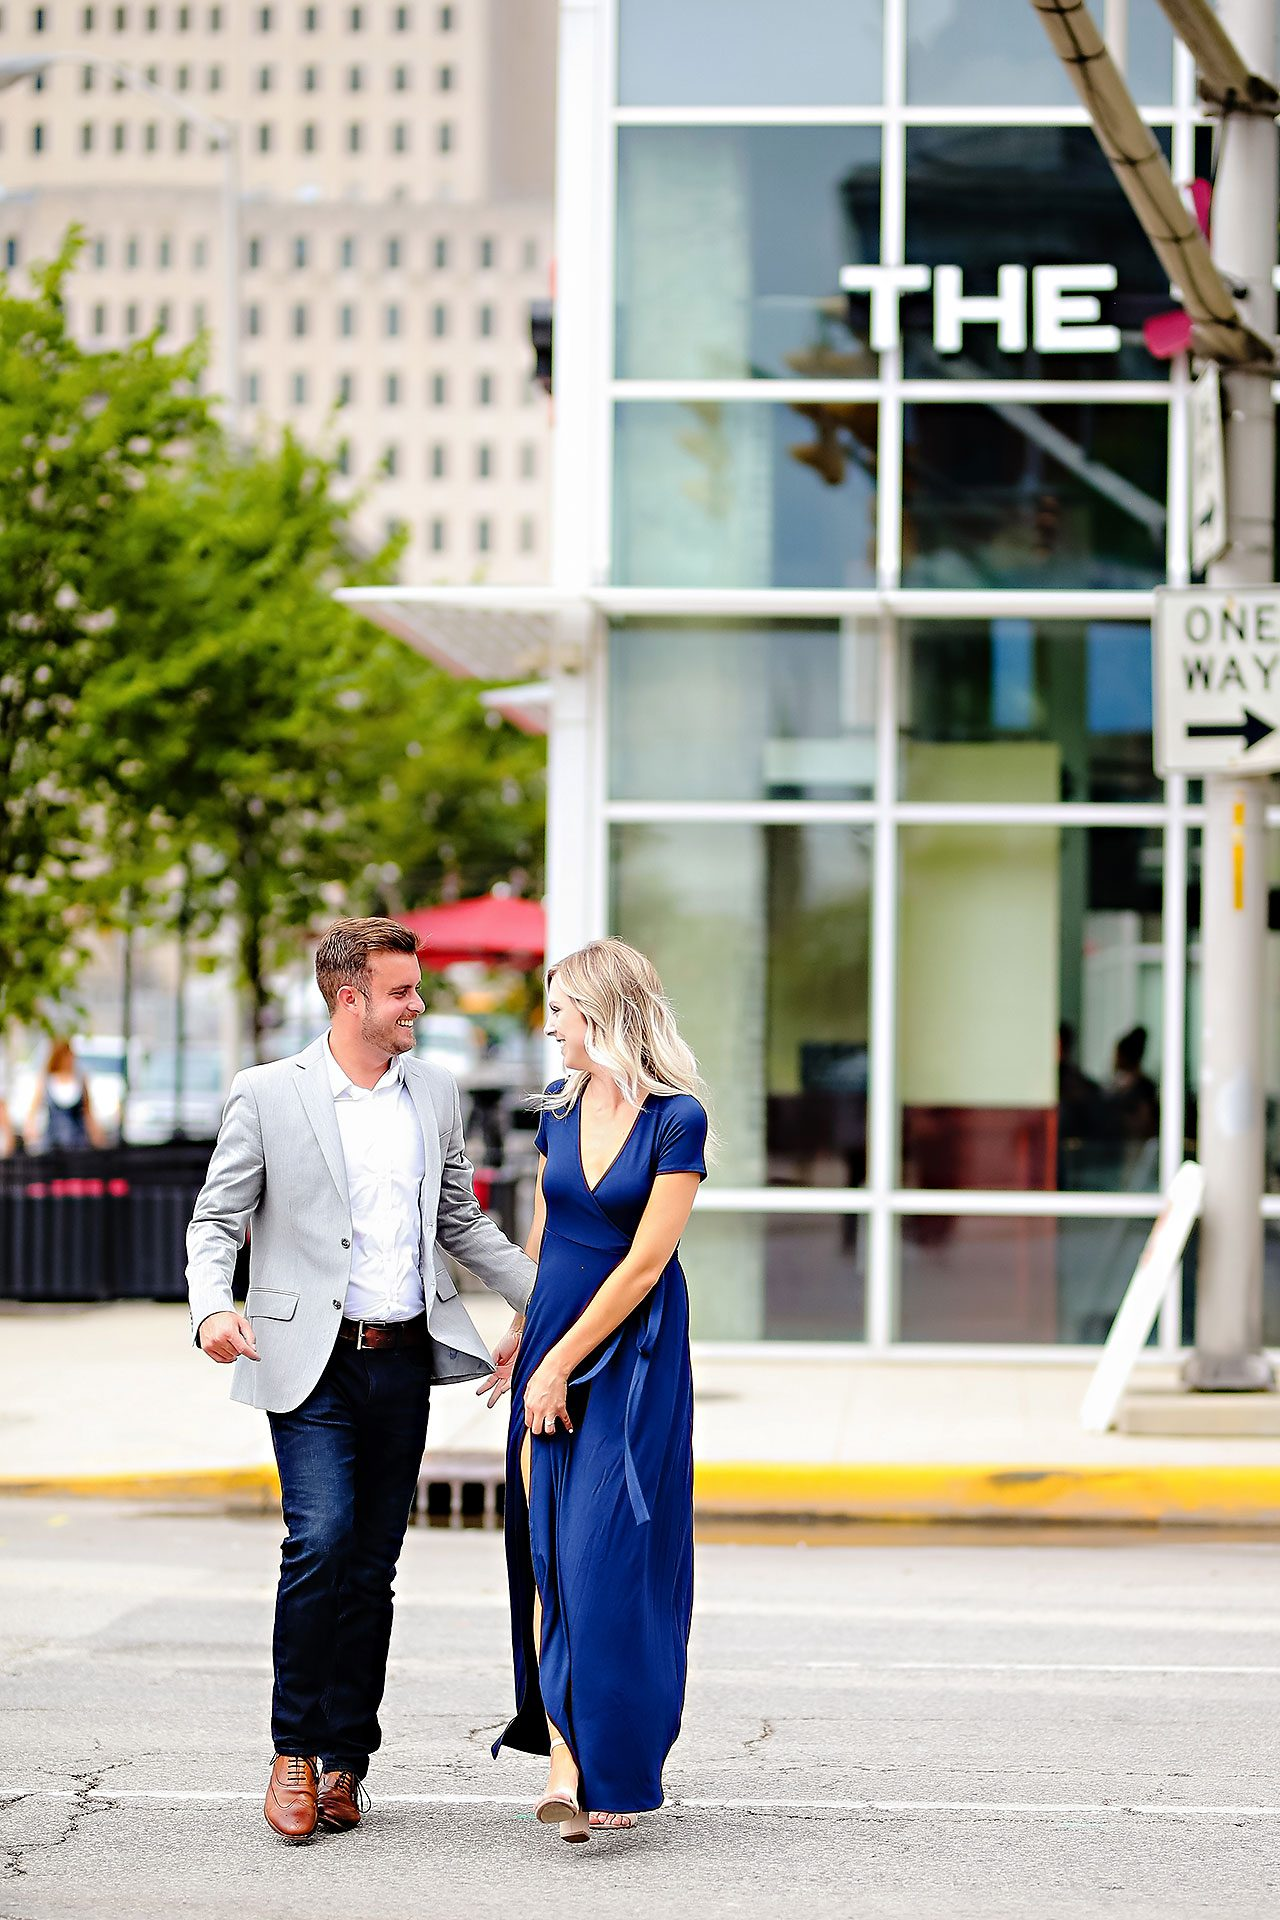 Melanie Jordan Mass Ave Engagement Session 075